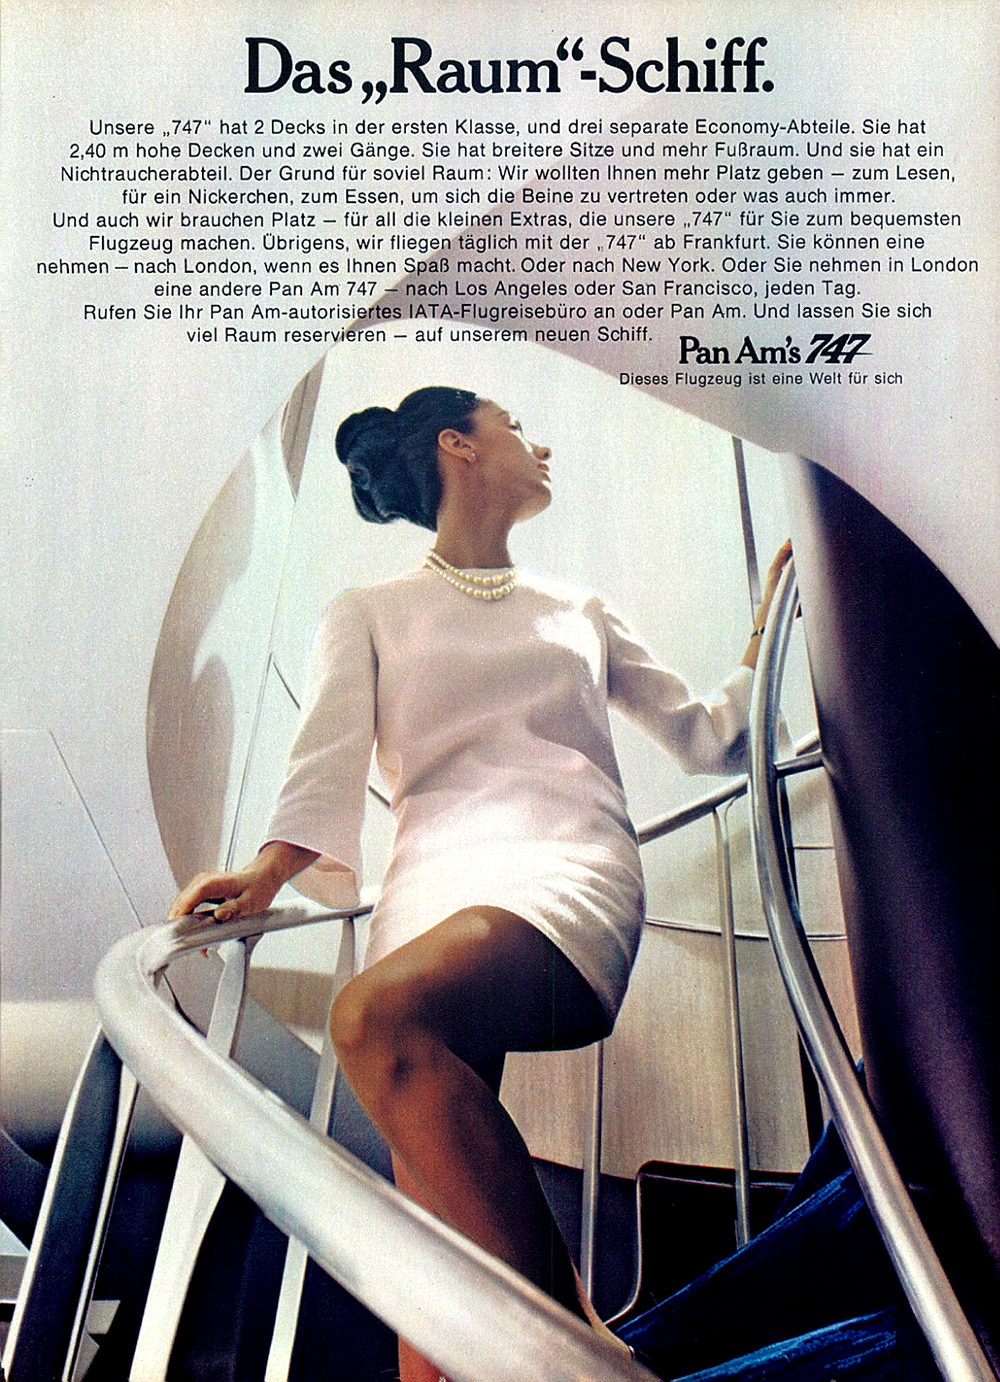 Pan Am advert vintage